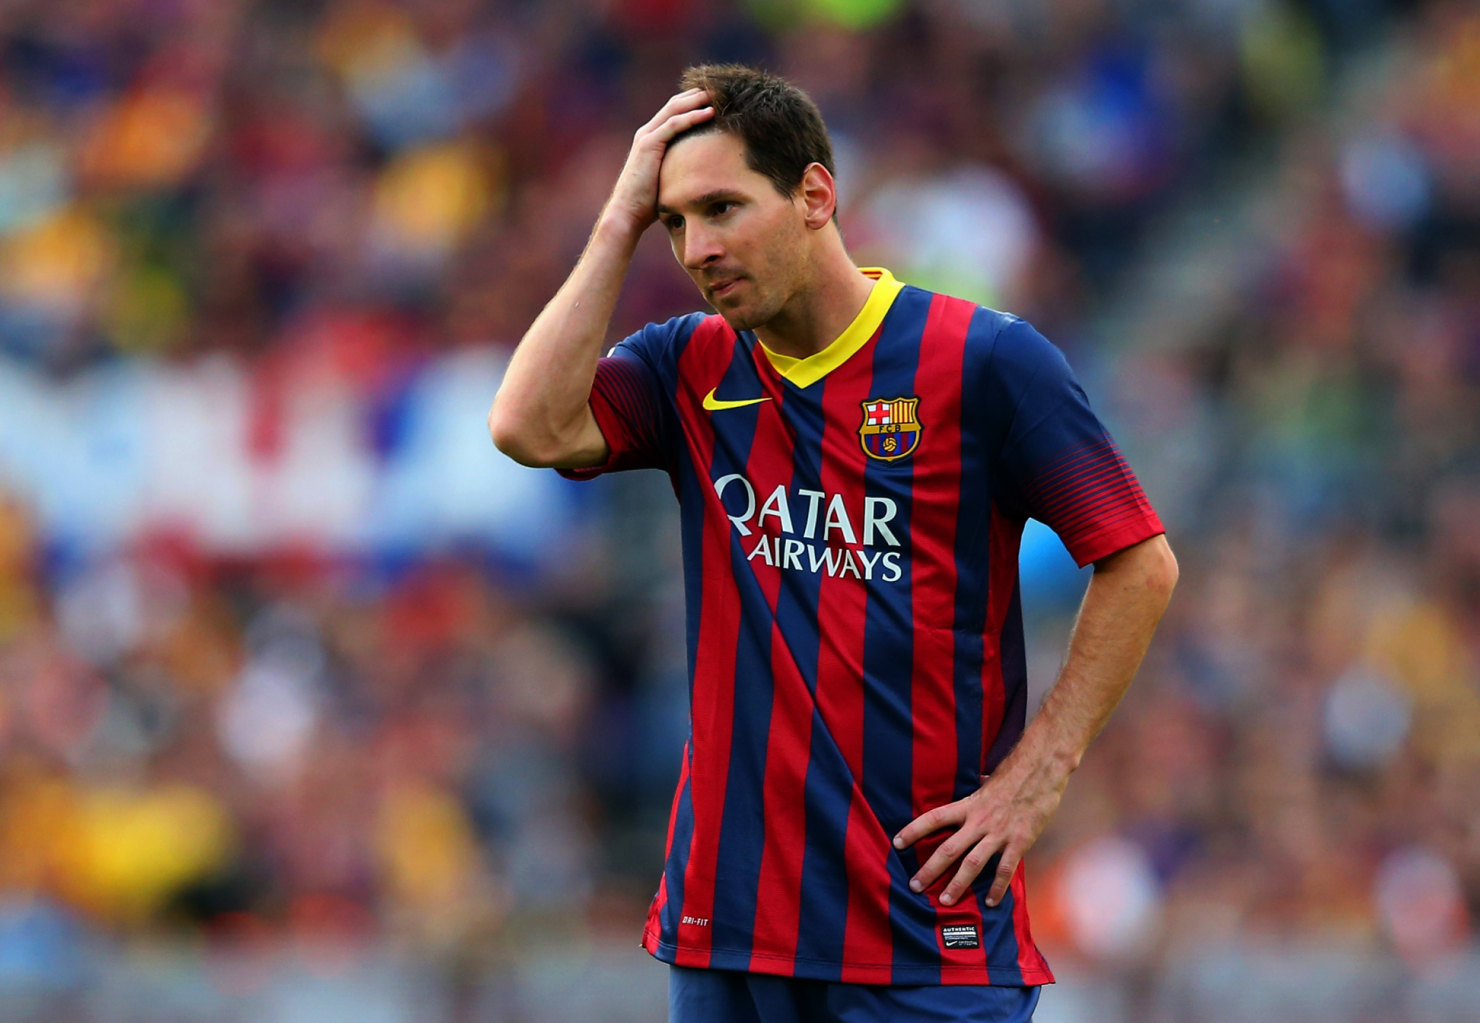 Lionel Messi having second thoughts about staying in Barcelona